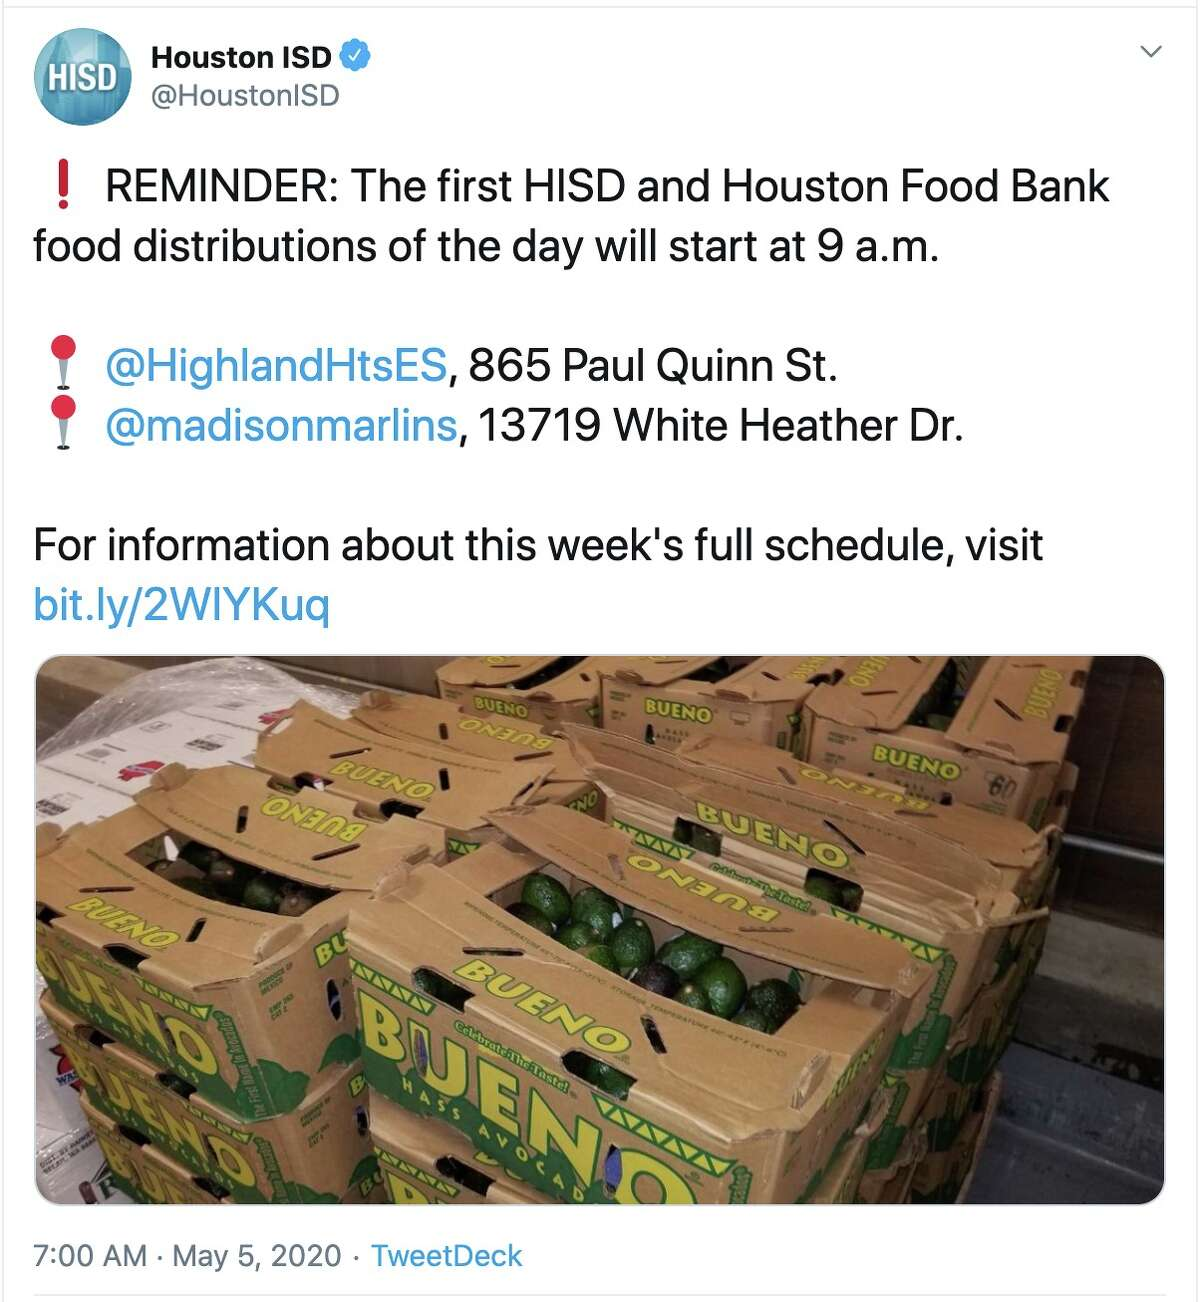 Chron.com is compiling the latest social media posts as Houston responds to the coronavirus crisis.